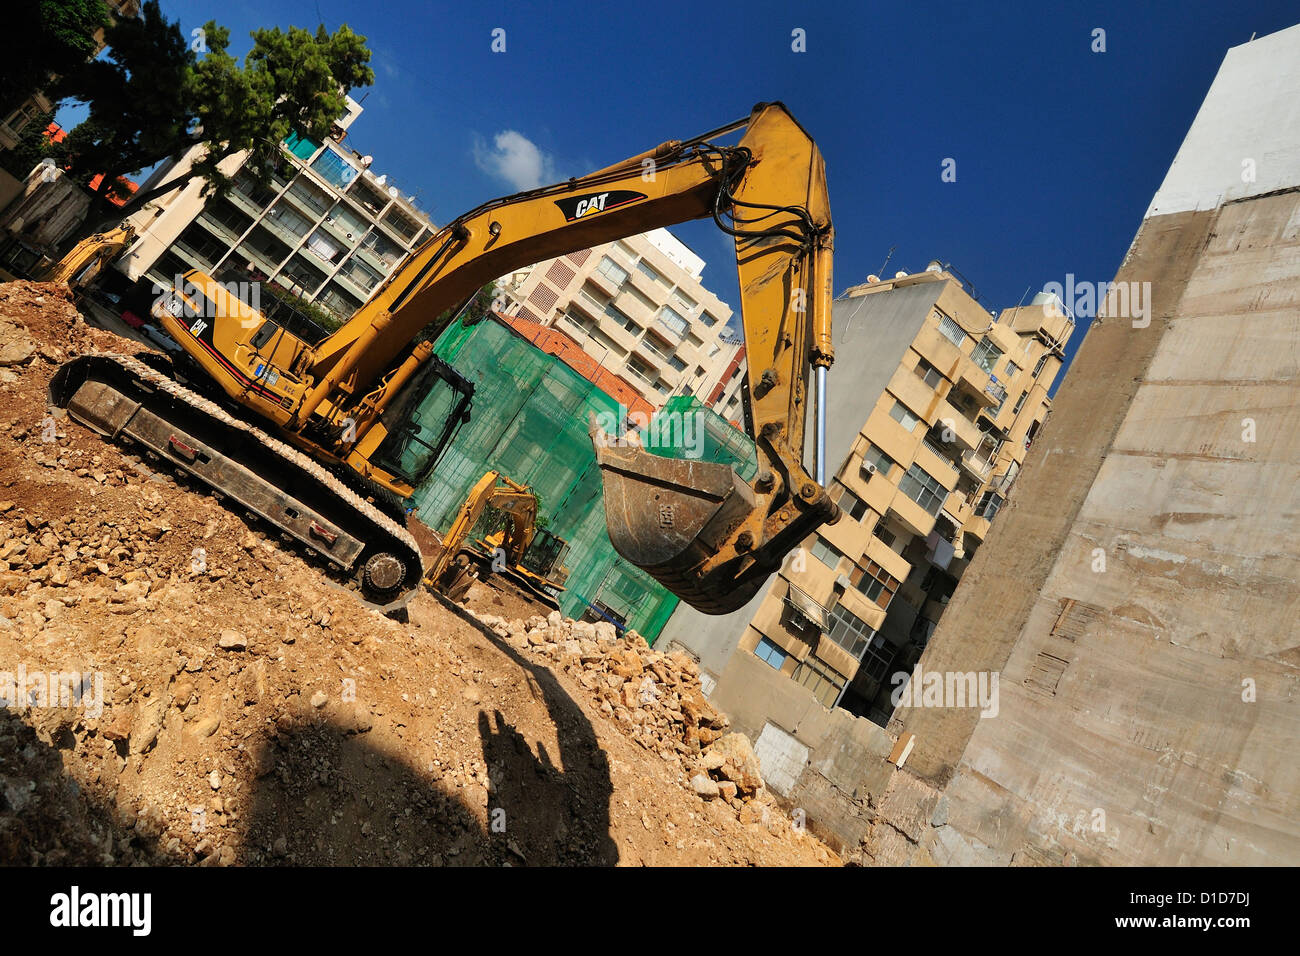 Buildings under construction, Beirut, Lebanon - Stock Image